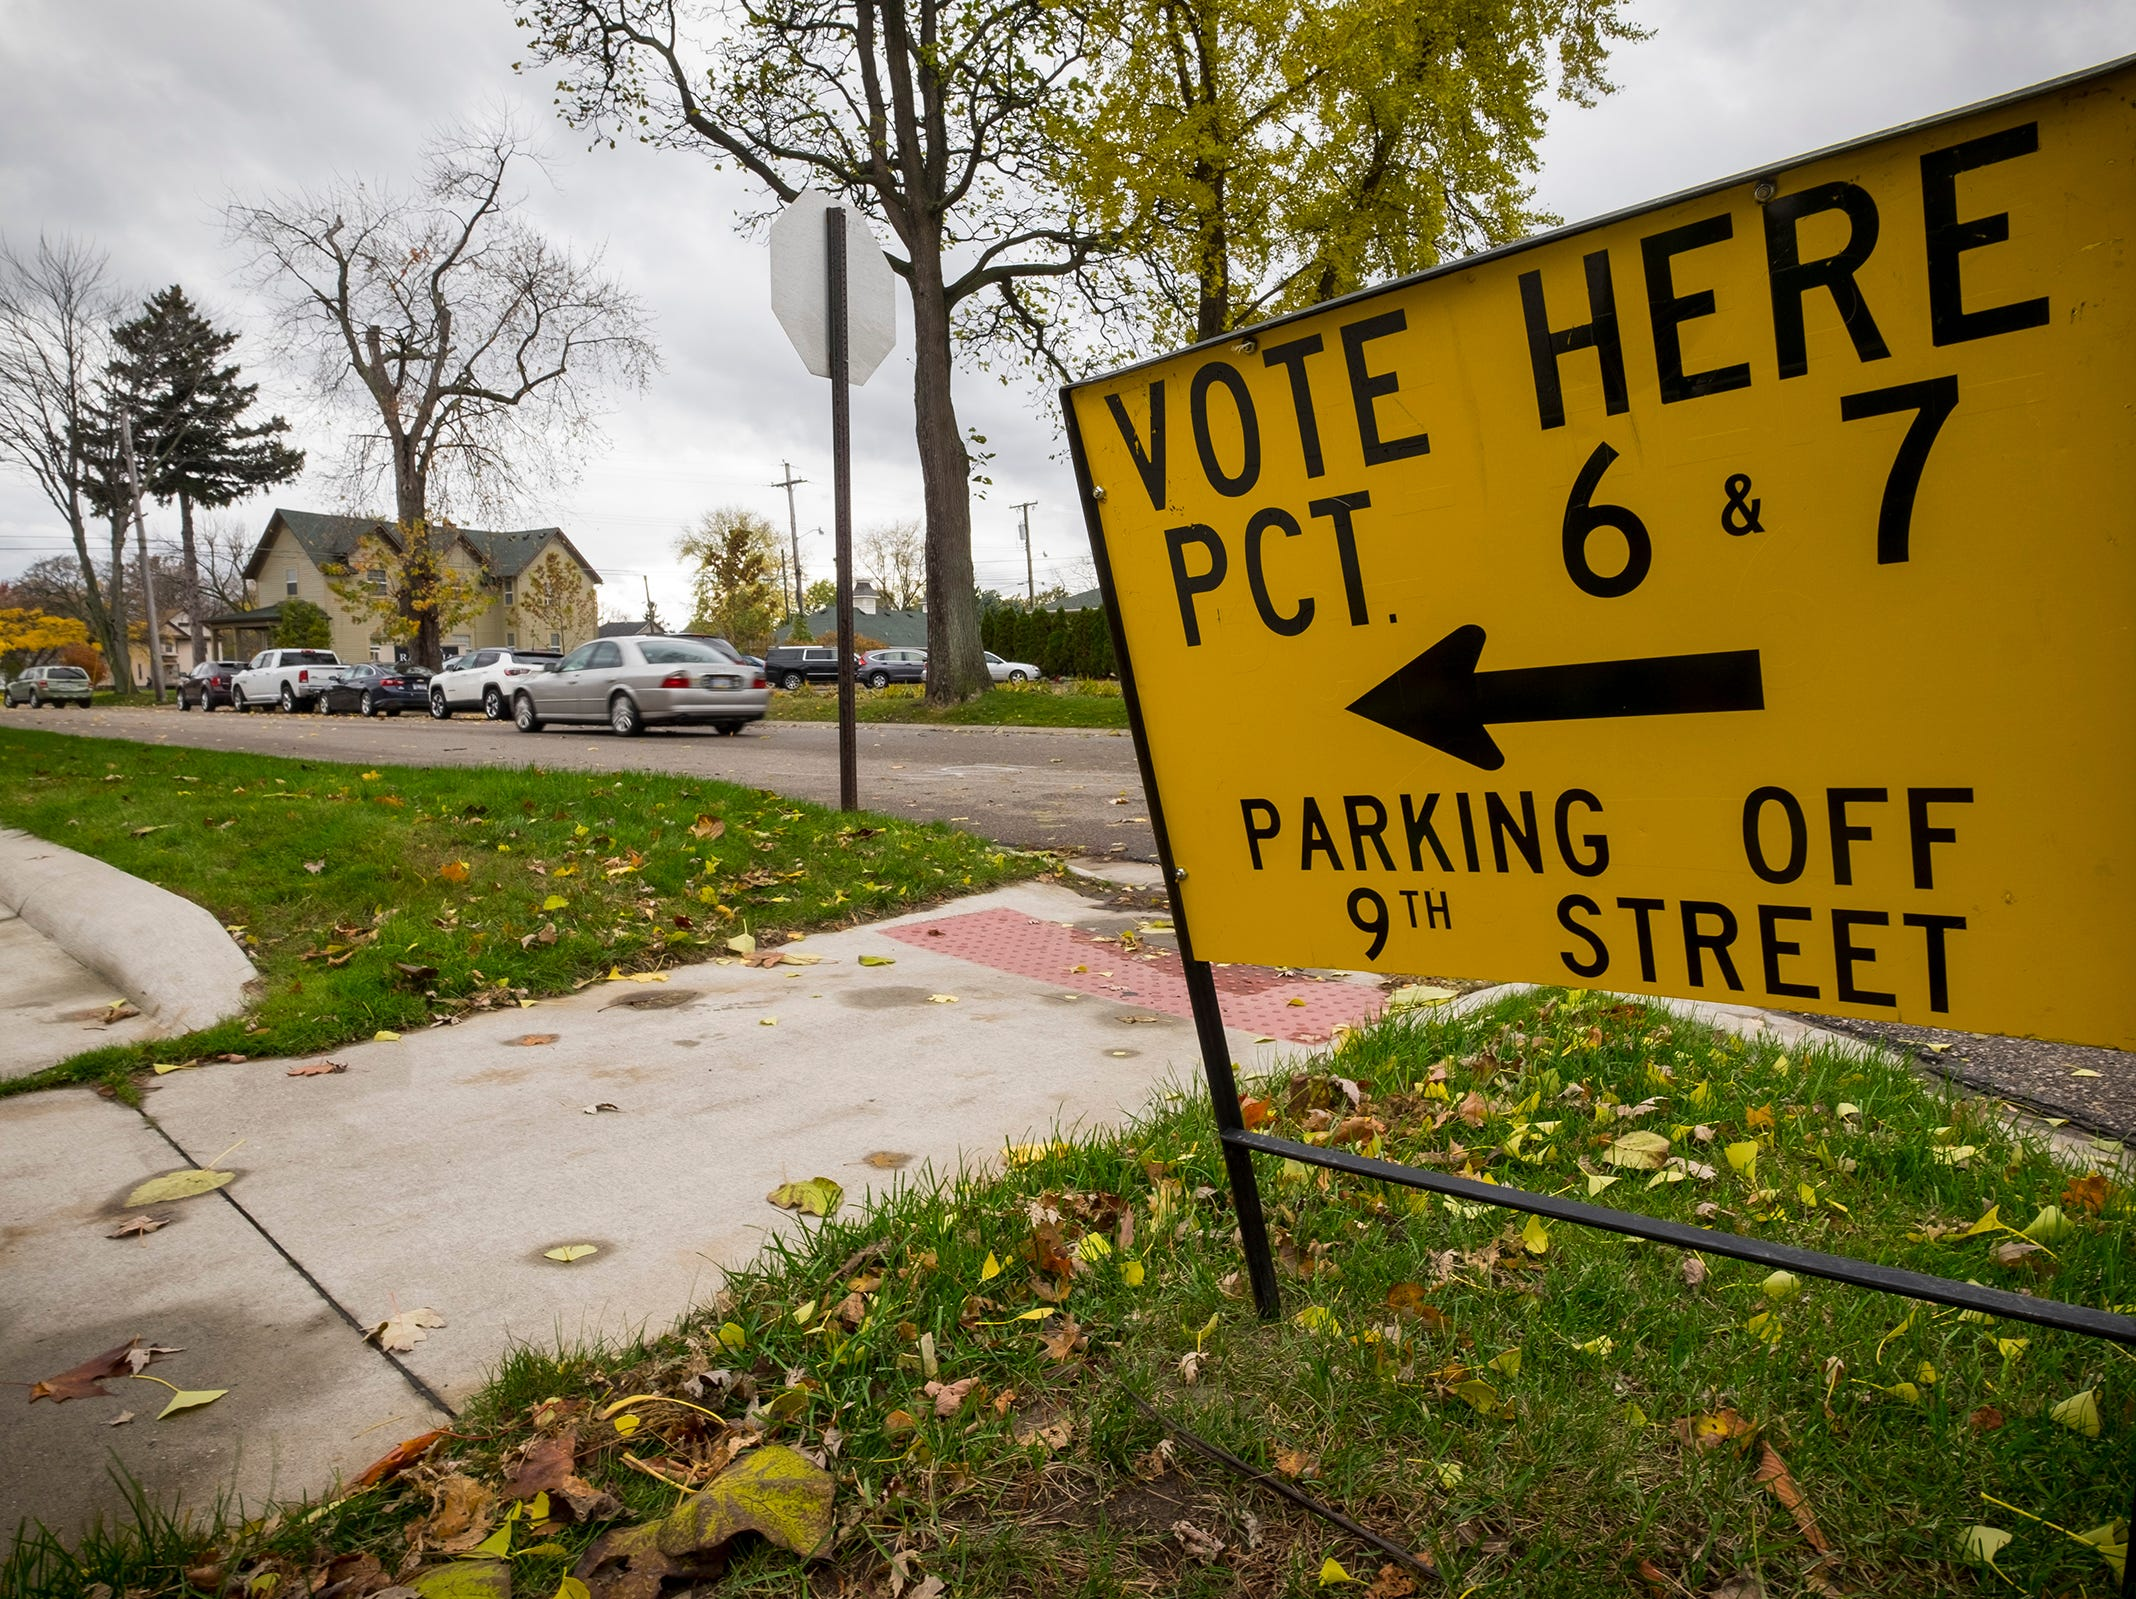 A car drives down Ninth Street in Port Huron towards First United Methodist Church, which serves as the voting location for precincts 6 and 7 Tuesday, Nov. 6, 2018 during mid-term elections.